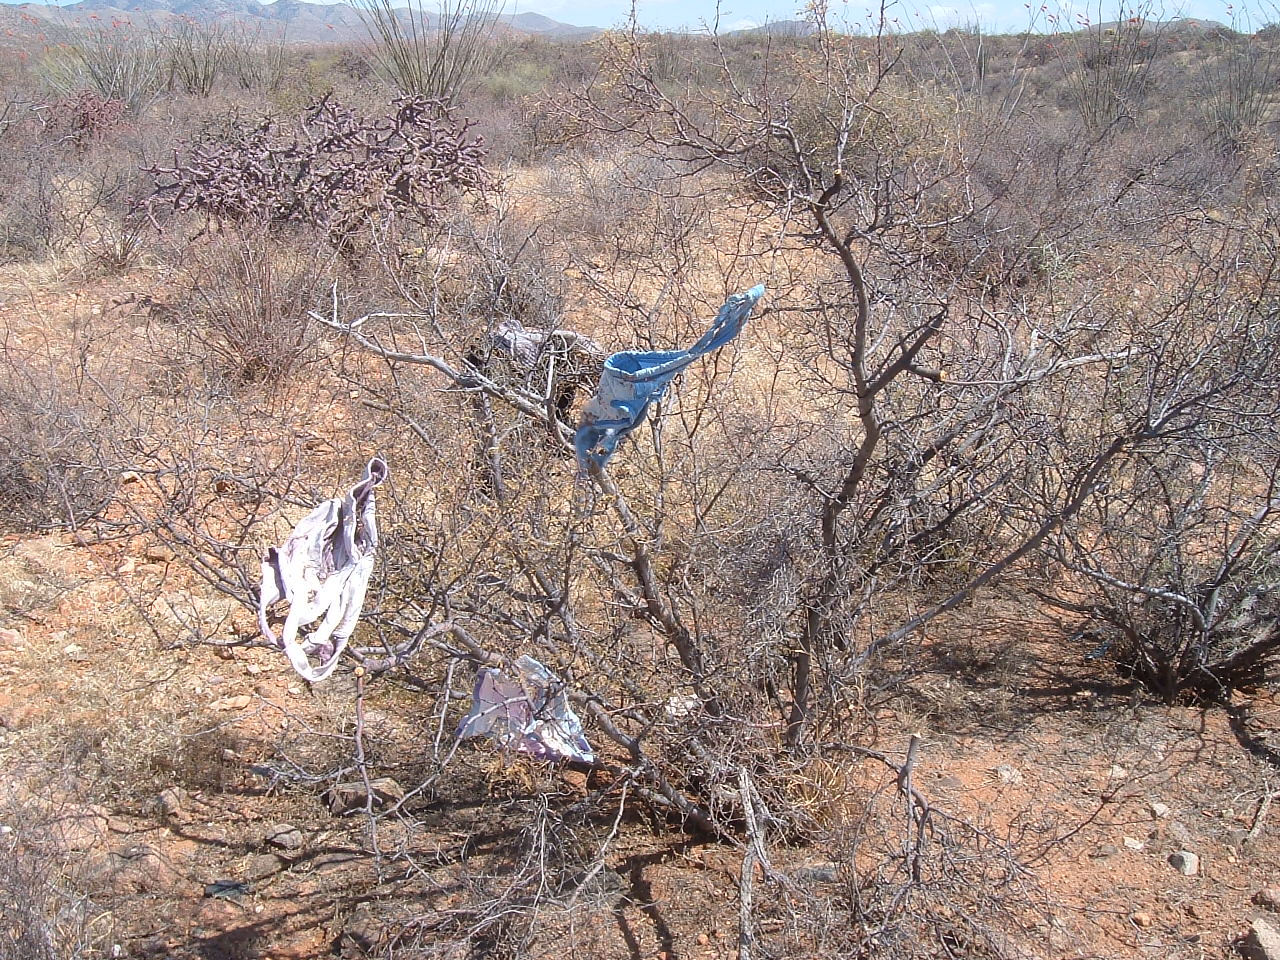 'RAPE TREES' COMMON ALONG IMMIGRANT SMUGGLING ROUTE | AZ ...